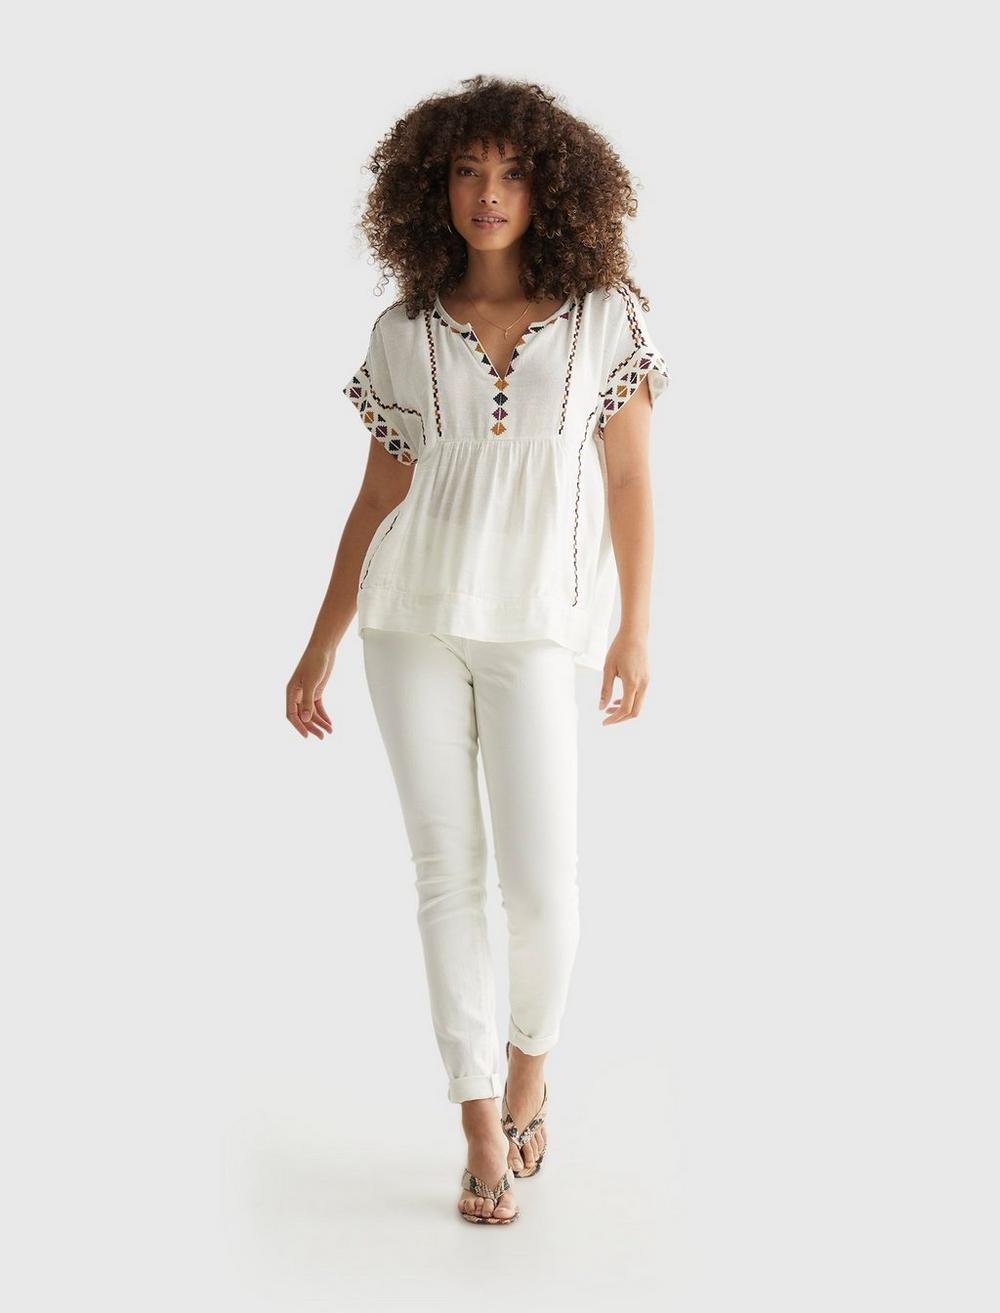 SHORT SLEEVE EMBROIDERED PEASANT TOP, image 2